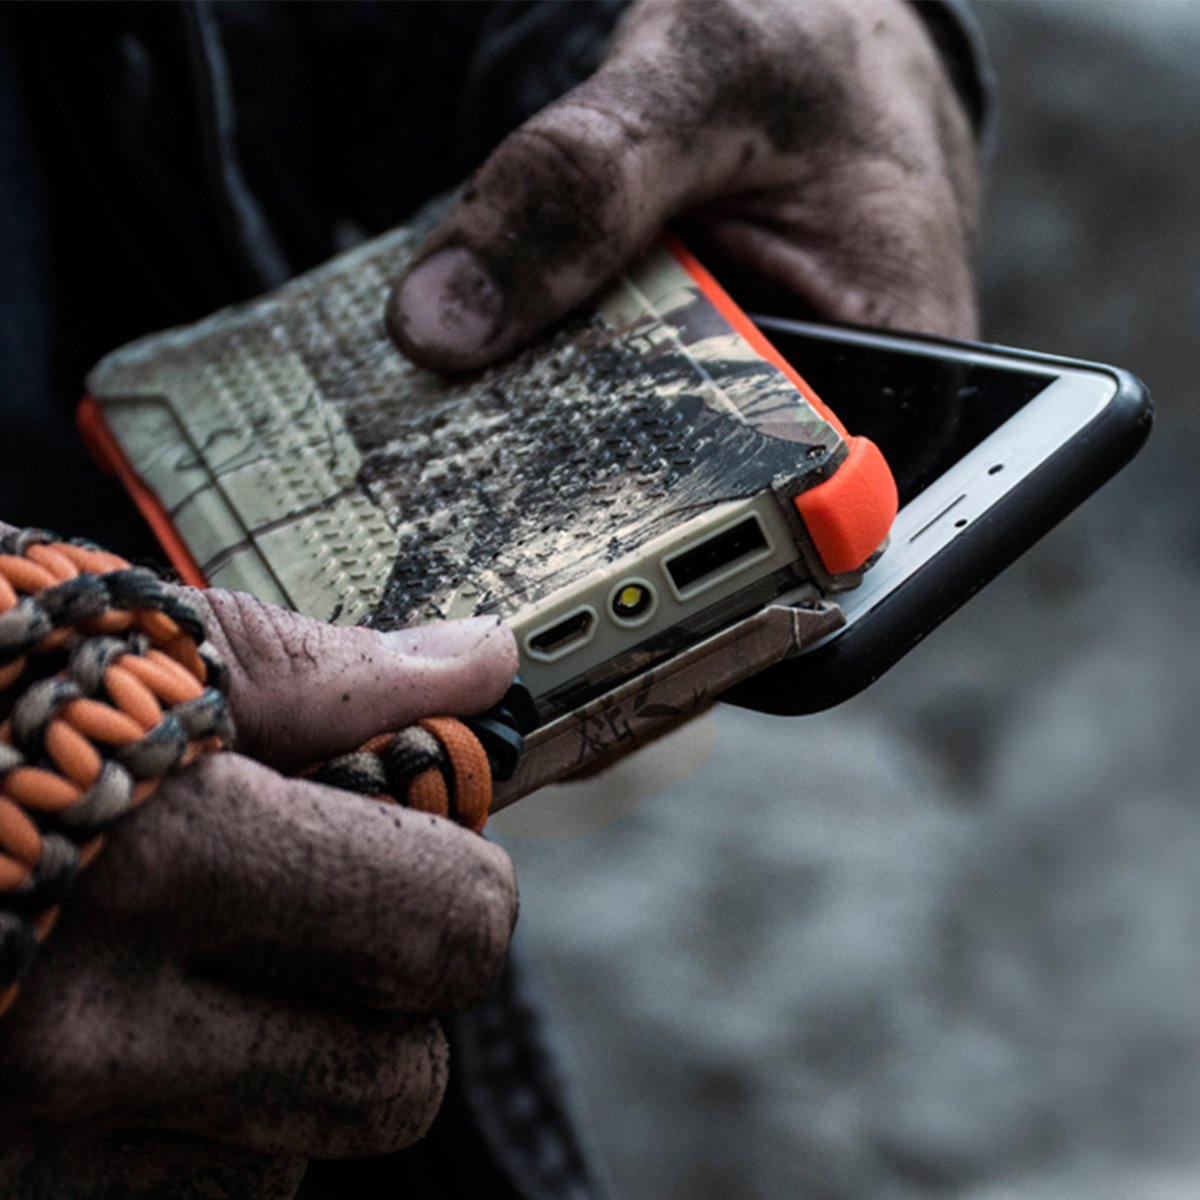 Dark Energy Poseidon IP68 Waterproof, Shockproof, Dustproof, 10,000mah, 2 USB Port, 3.4 Amp Portable Charger and Light PLUS Paracord Charging Cable, Realtree by Dark Energy (Image #6)